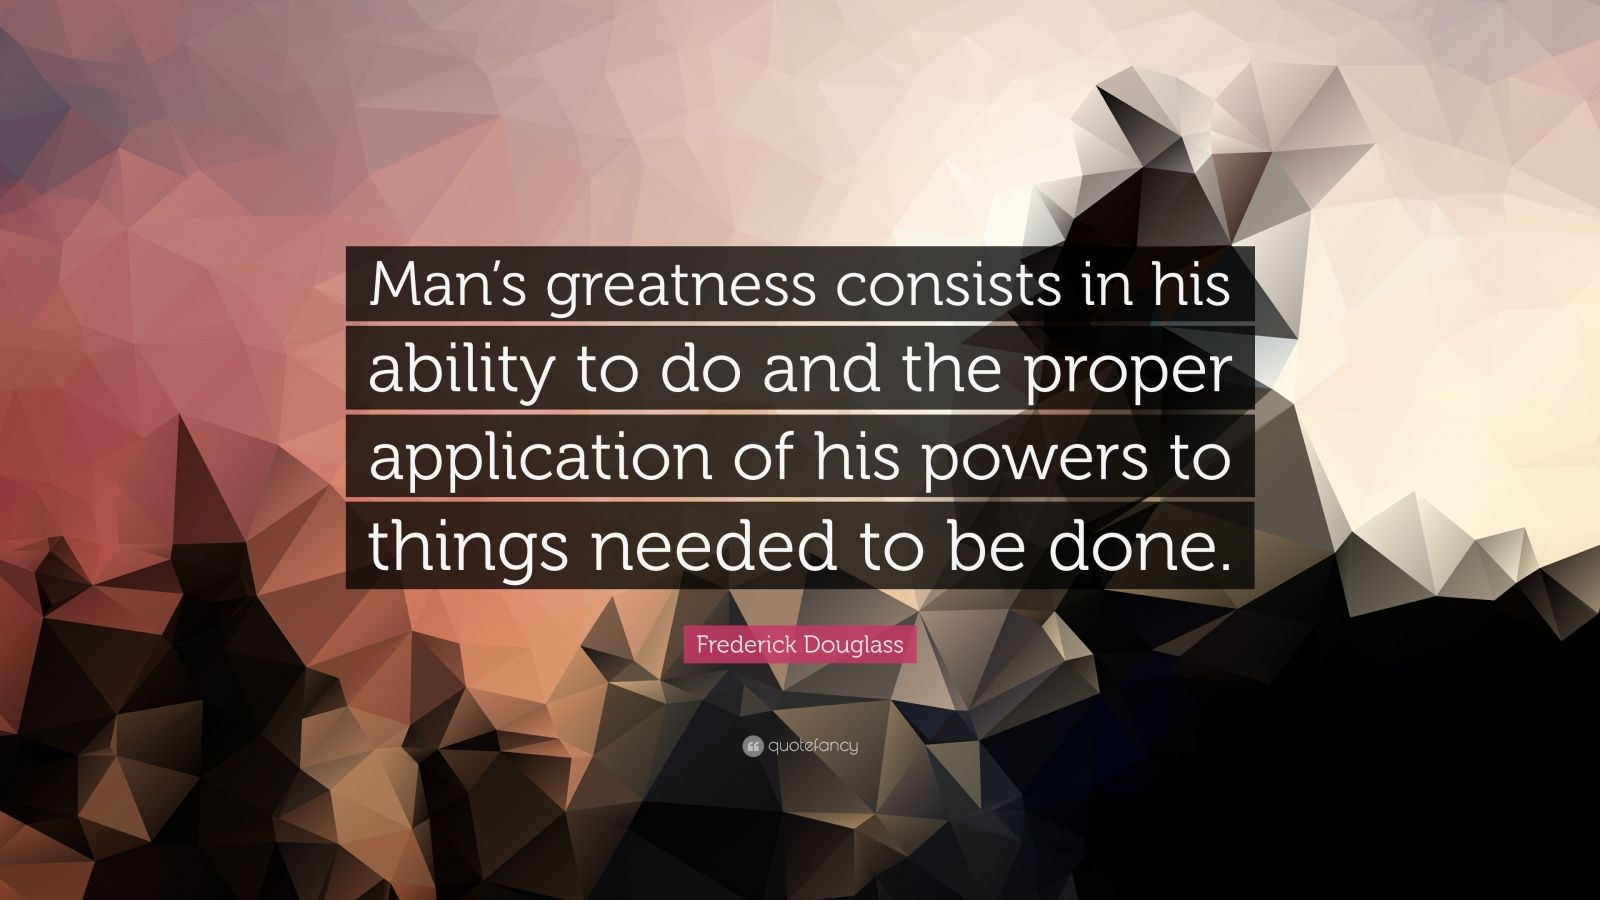 frederick douglass quotes quotefancy frederick douglass quote man s greatness consists in his ability to do and the proper